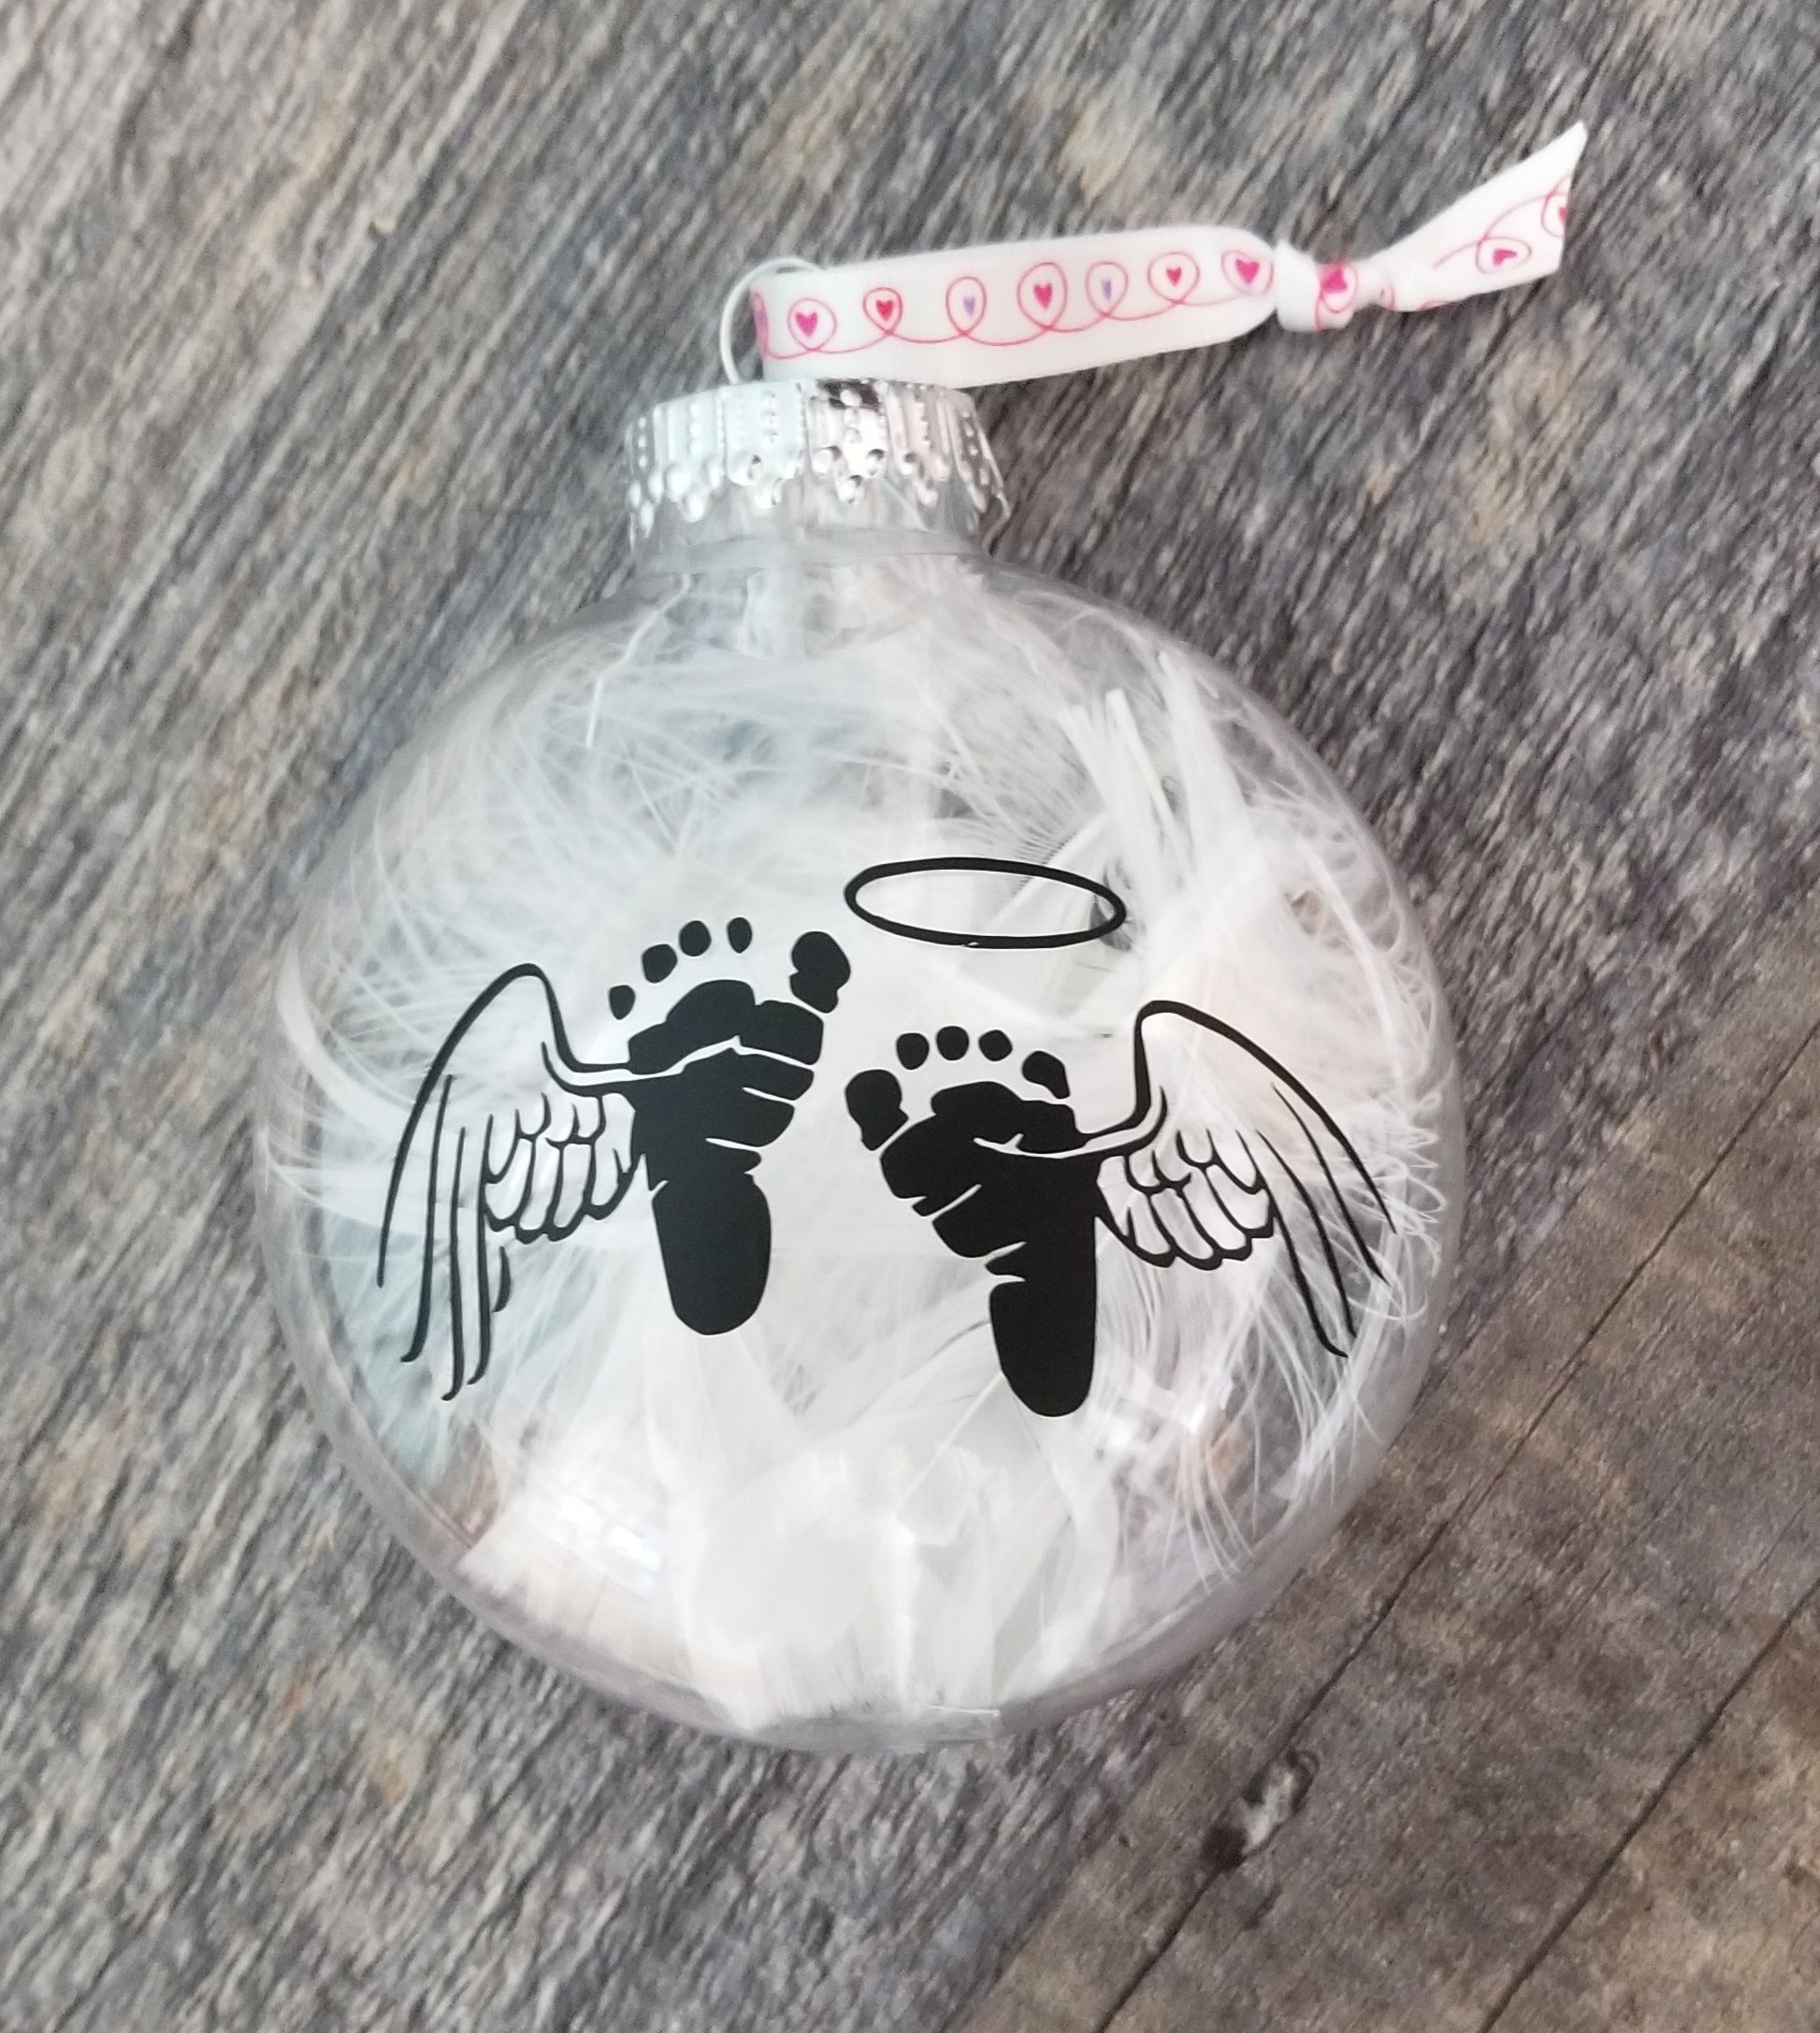 Large Memorial Ornament For Baby With Feathers Memorial Ornaments Baby Christmas Ornaments Baby Loss Ornament